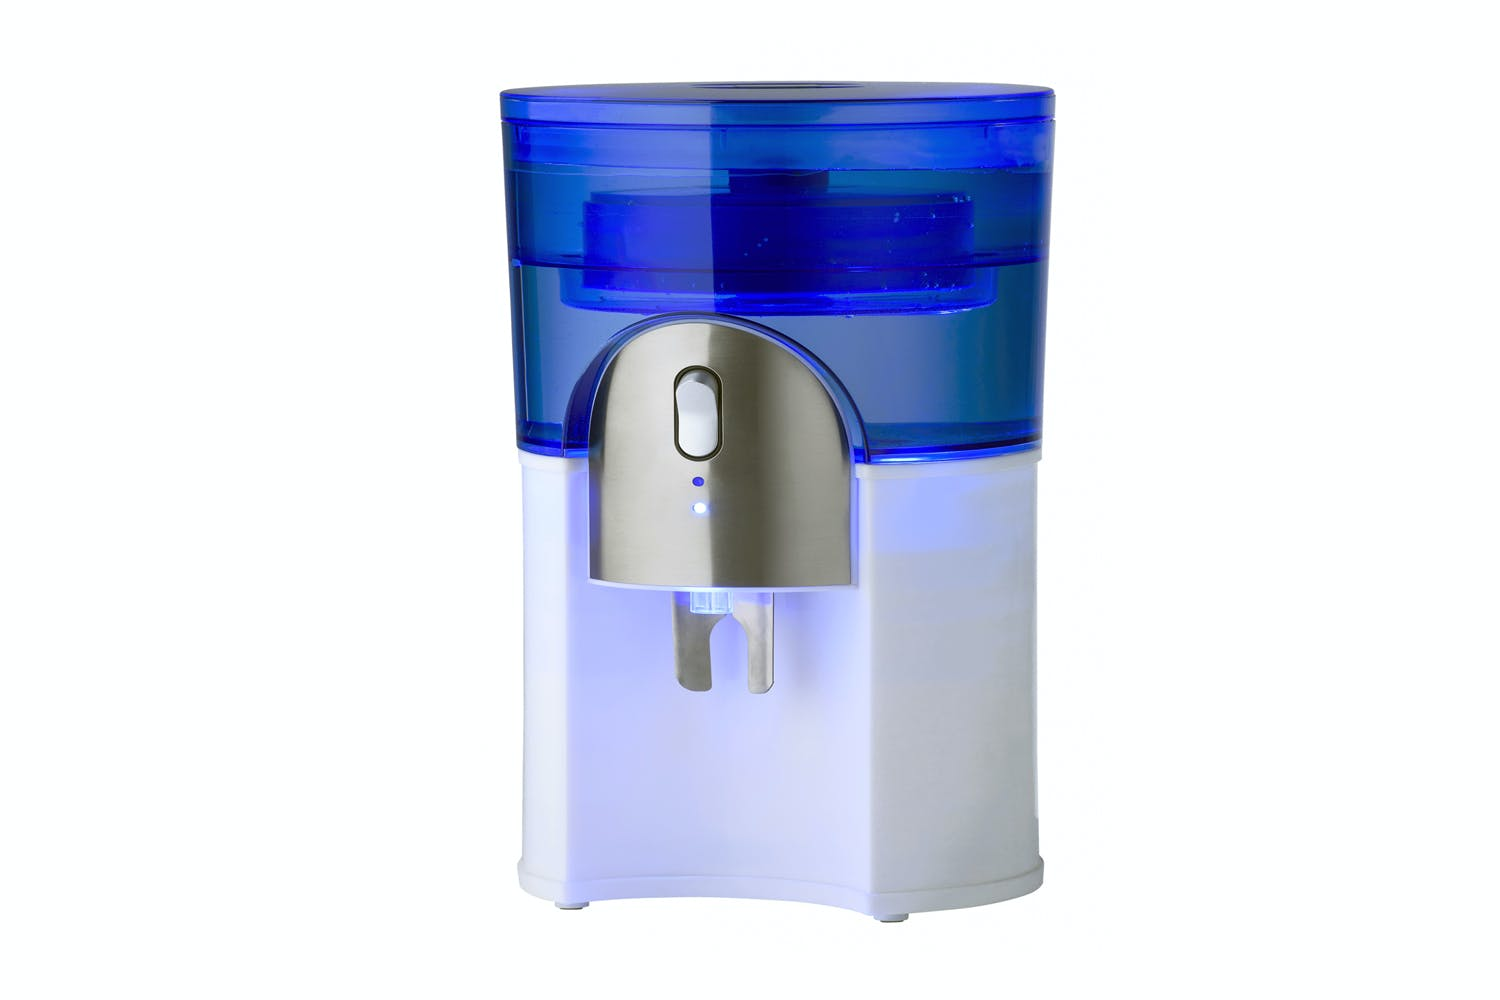 Desktop Beverage Cooler ~ Aquaport desktop filtered water cooler white harvey